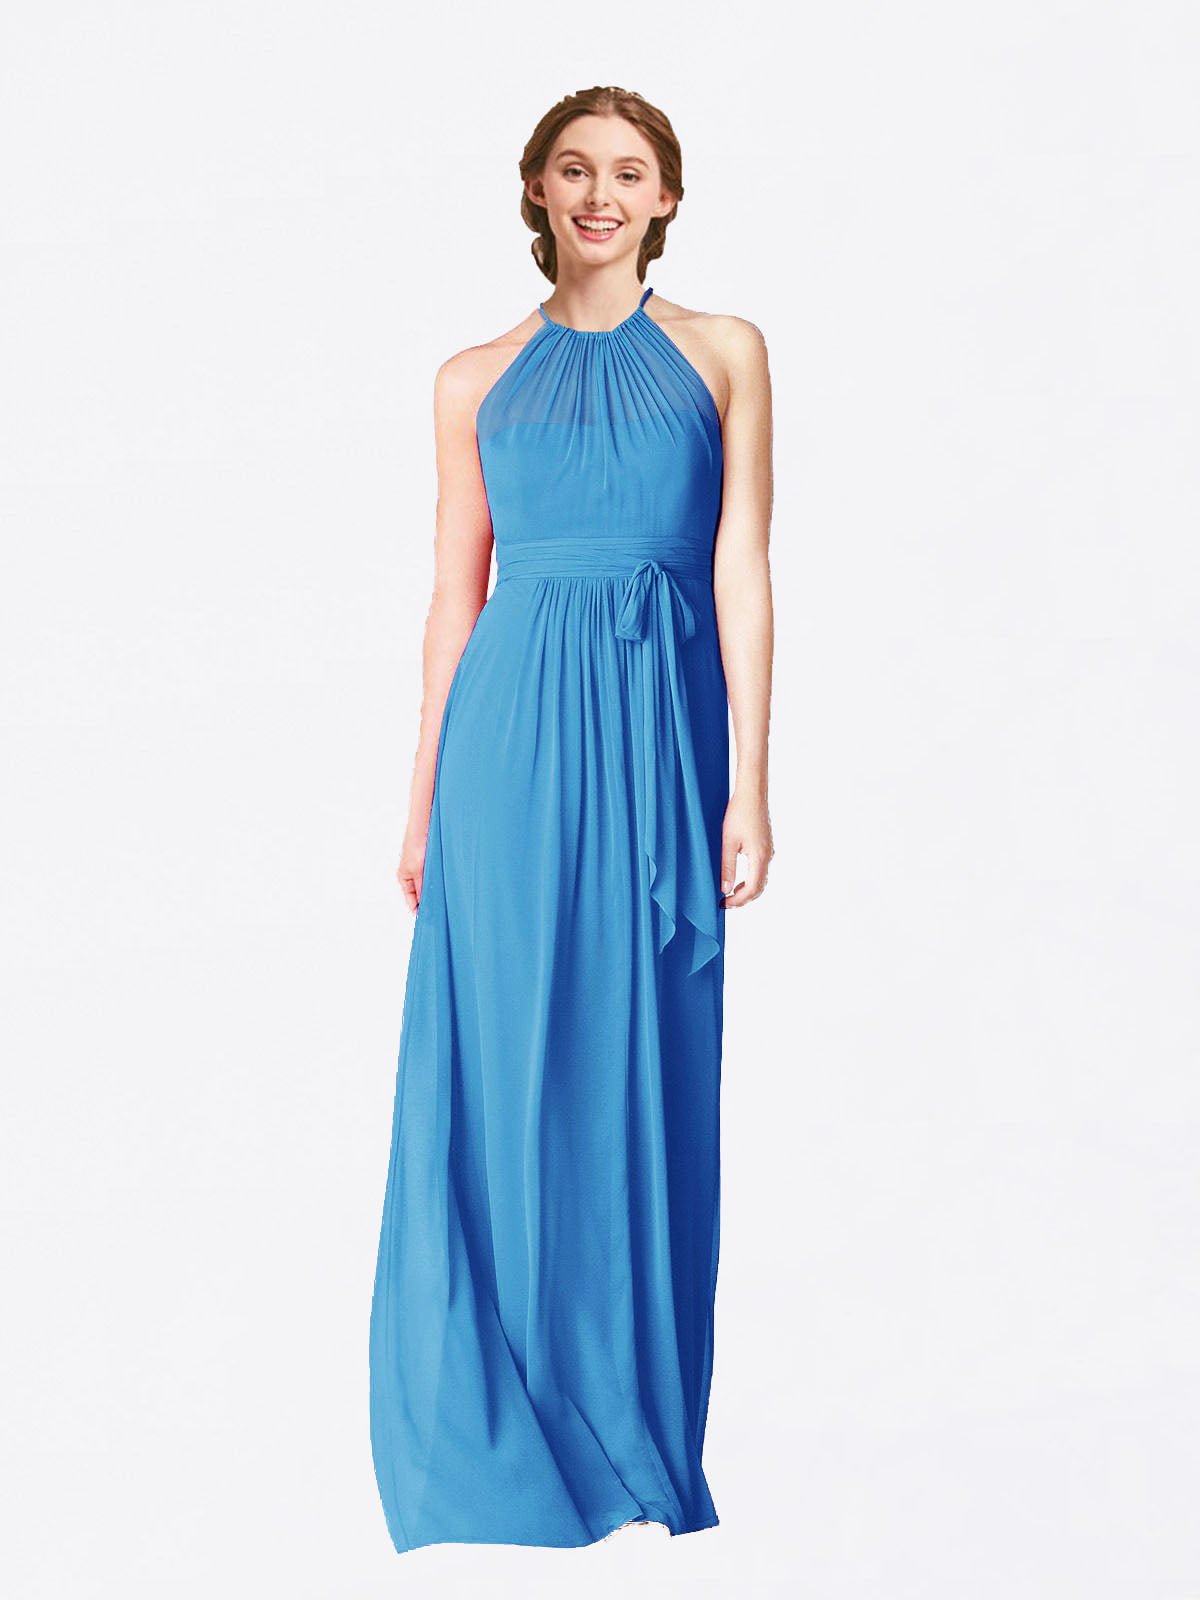 Long A-Line Halter Sleeveless Peacock Blue Chiffon Bridesmaid Dress Laura